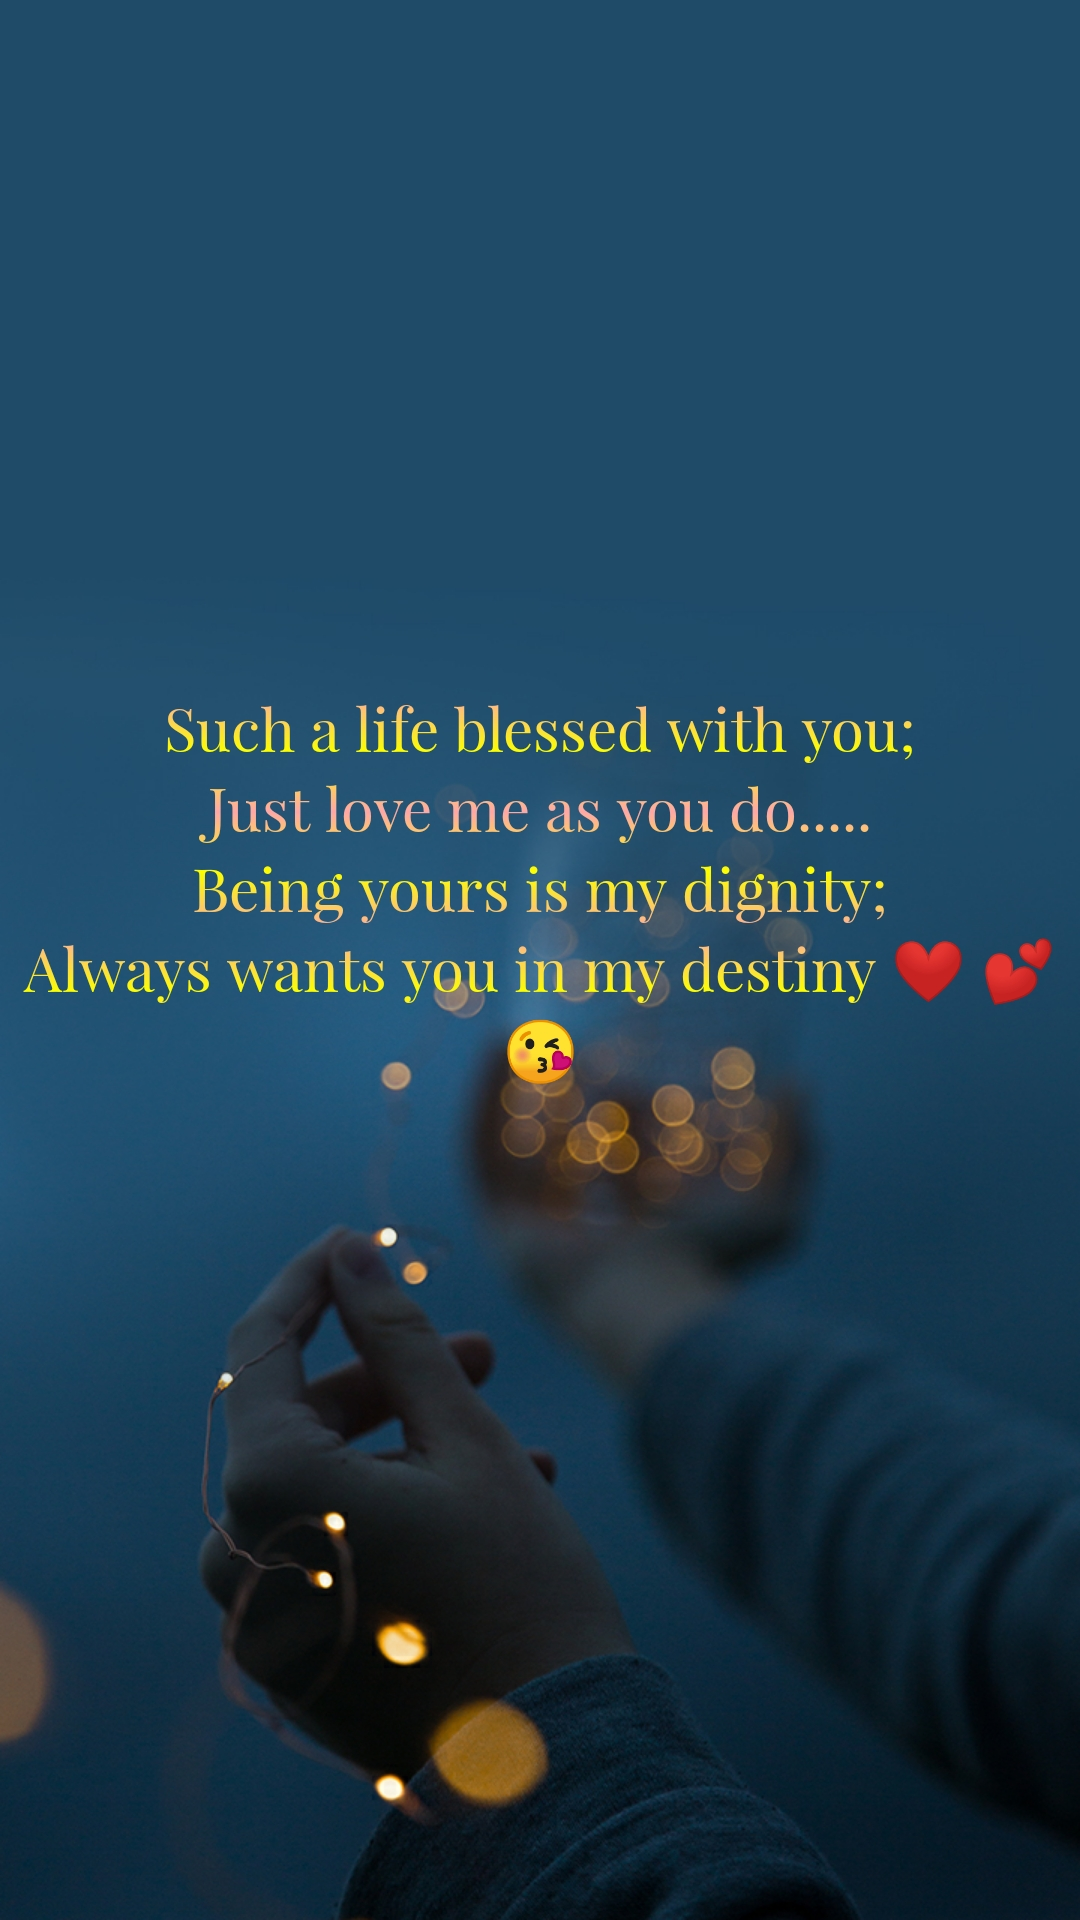 Such a life blessed with you; Just love me as you do..... Being yours is my dignity; Always wants you in my destiny ❤ 💕 😘